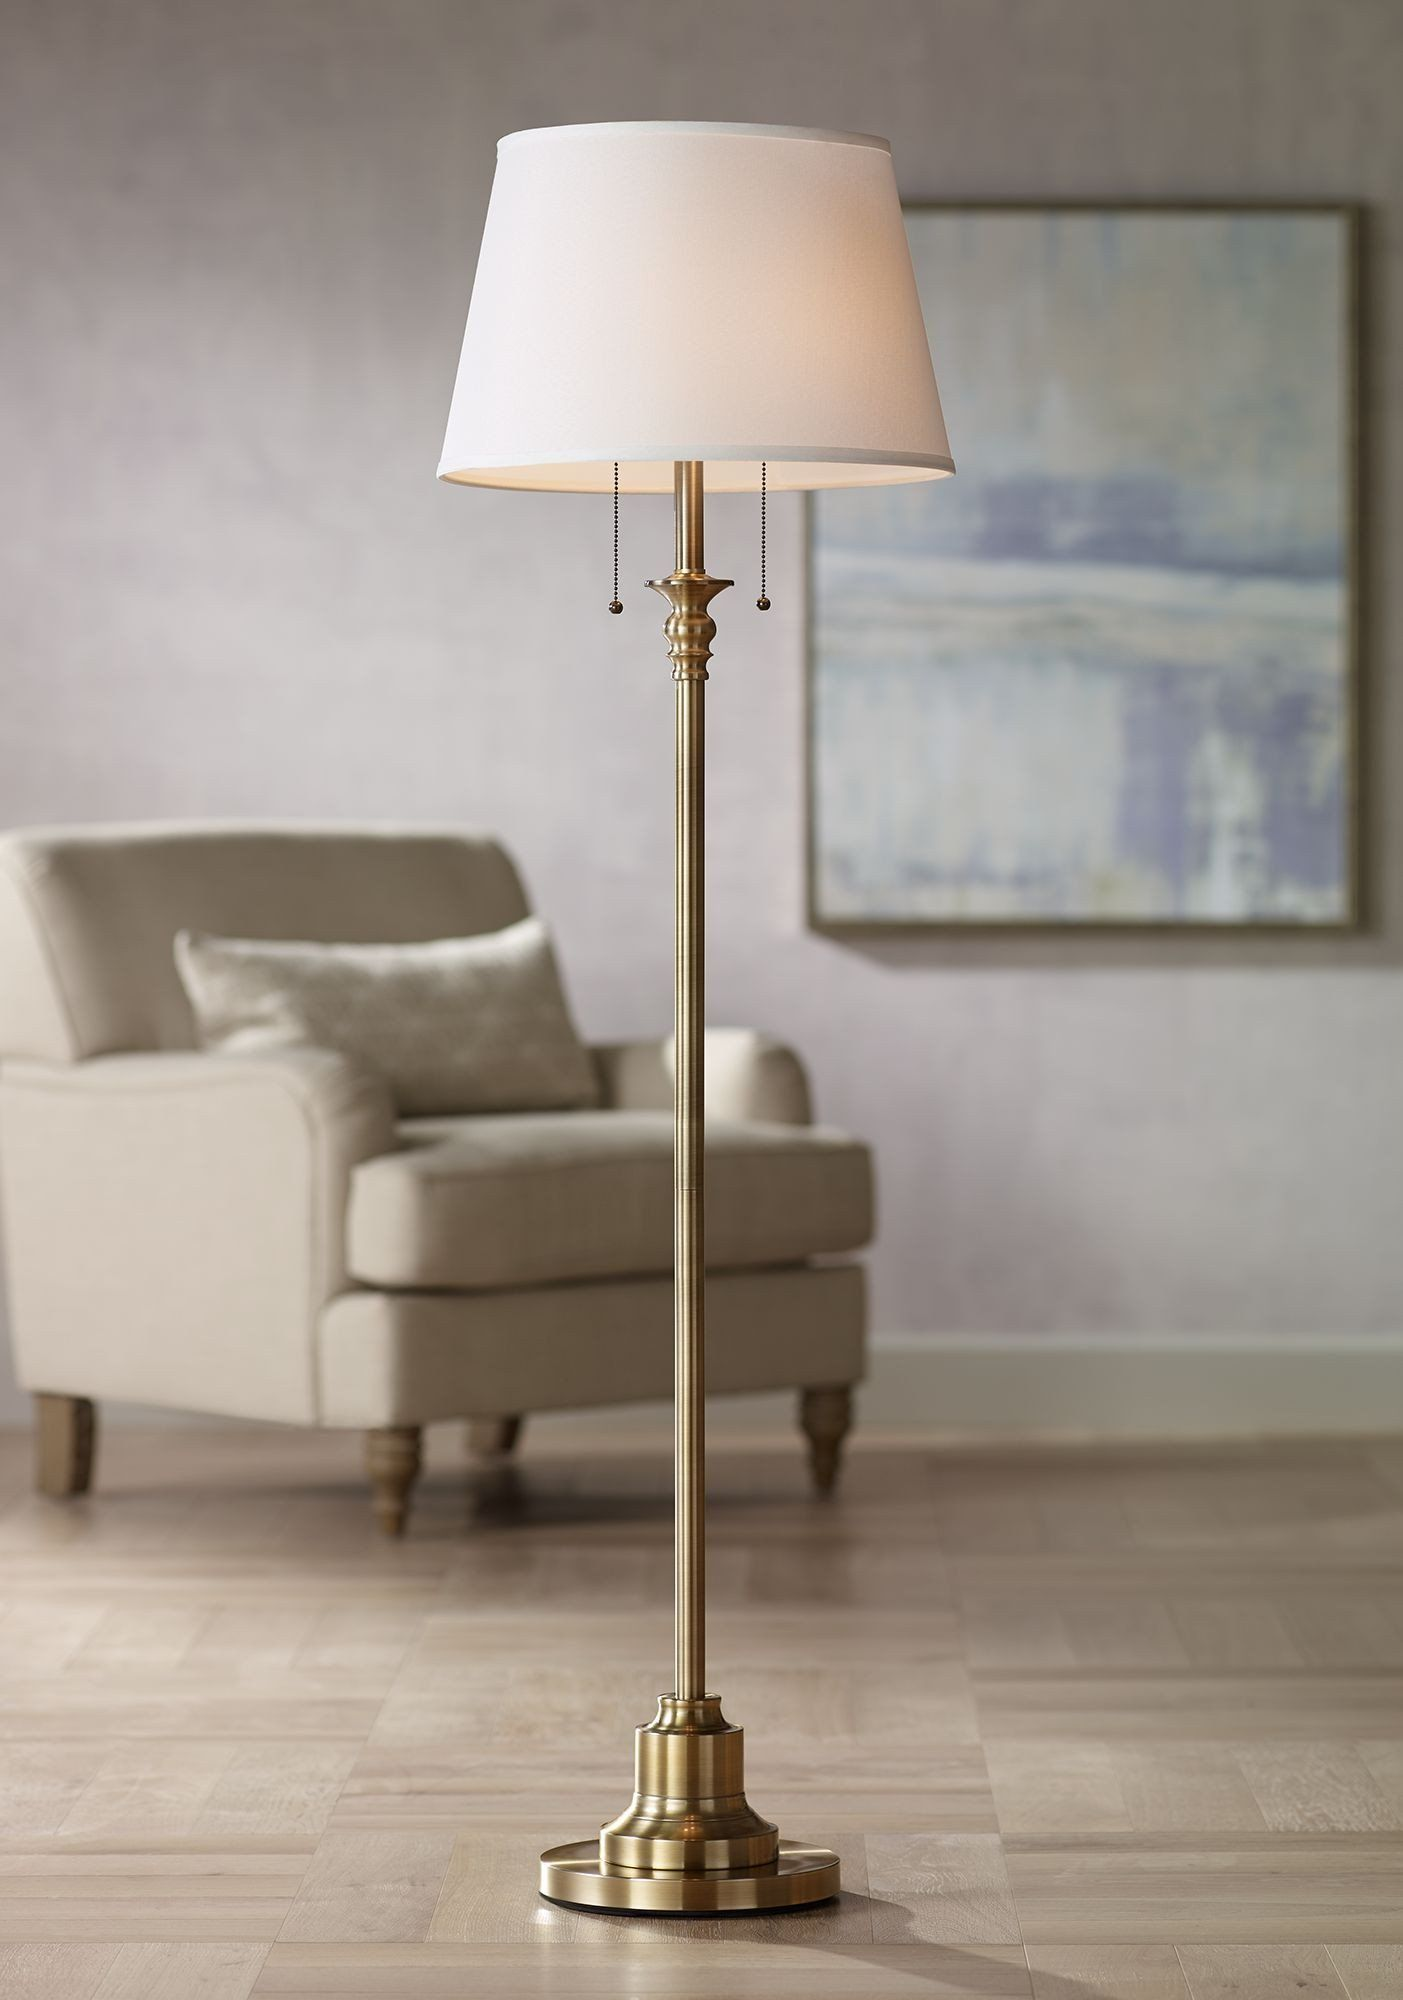 Traditional Living Room Lamps 360 Lighting Traditional Floor Lamp Brushed Antique Brass Metal In 2020 Traditional Floor Lamps Brass Floor Lamp Antique Brass Floor Lamp